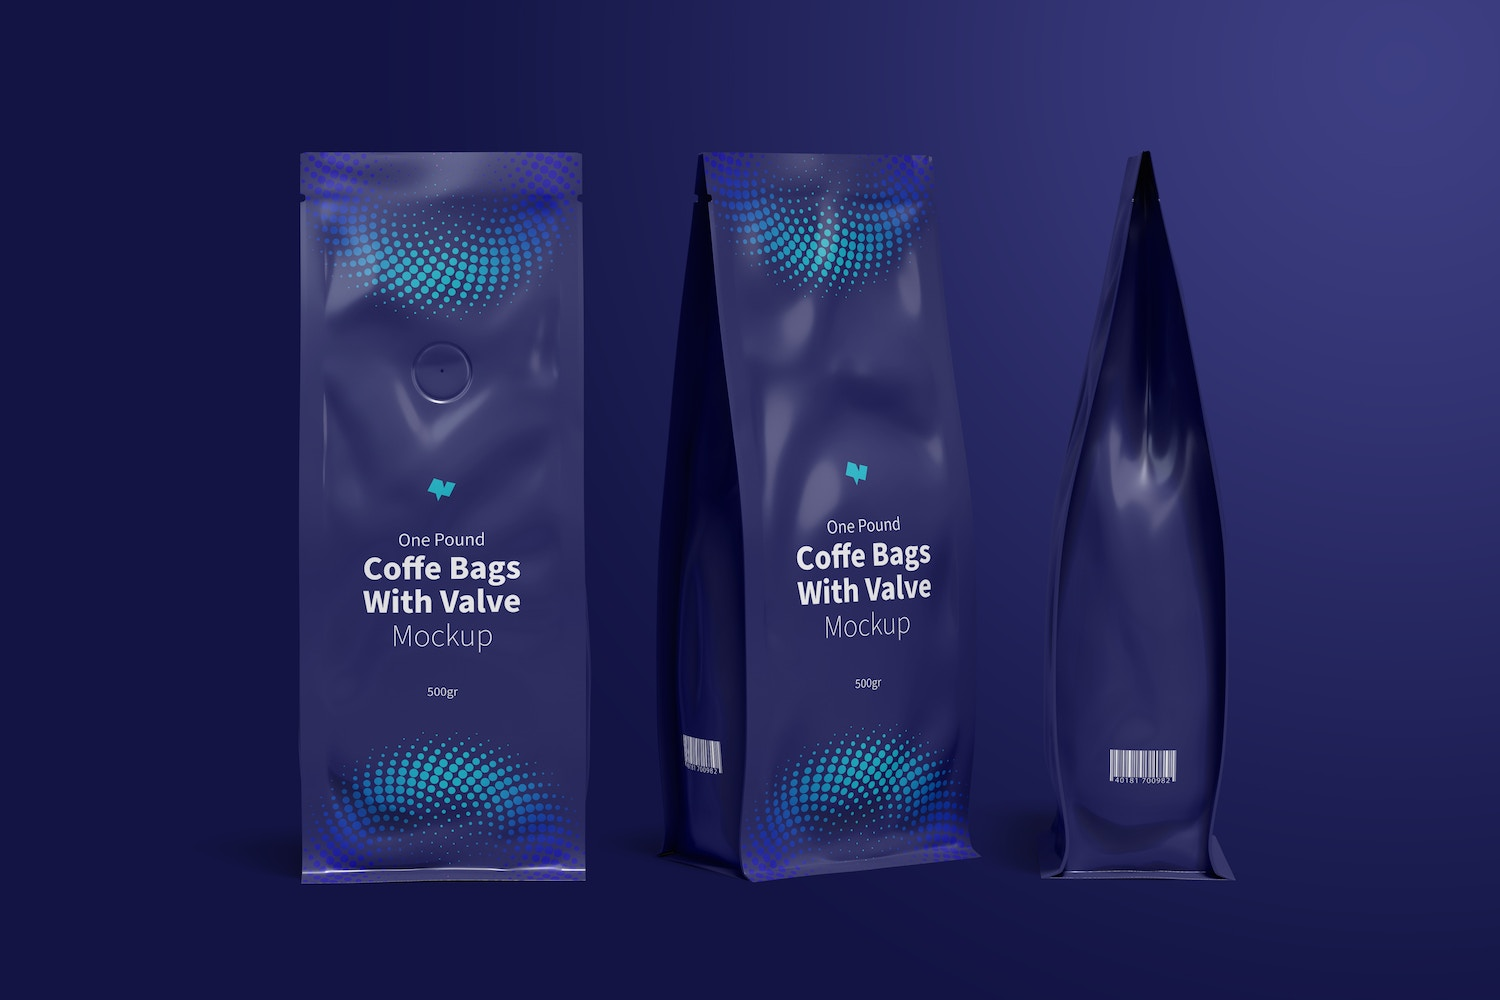 One Pound Coffee Bags with Valve Mockup, Multiple Views